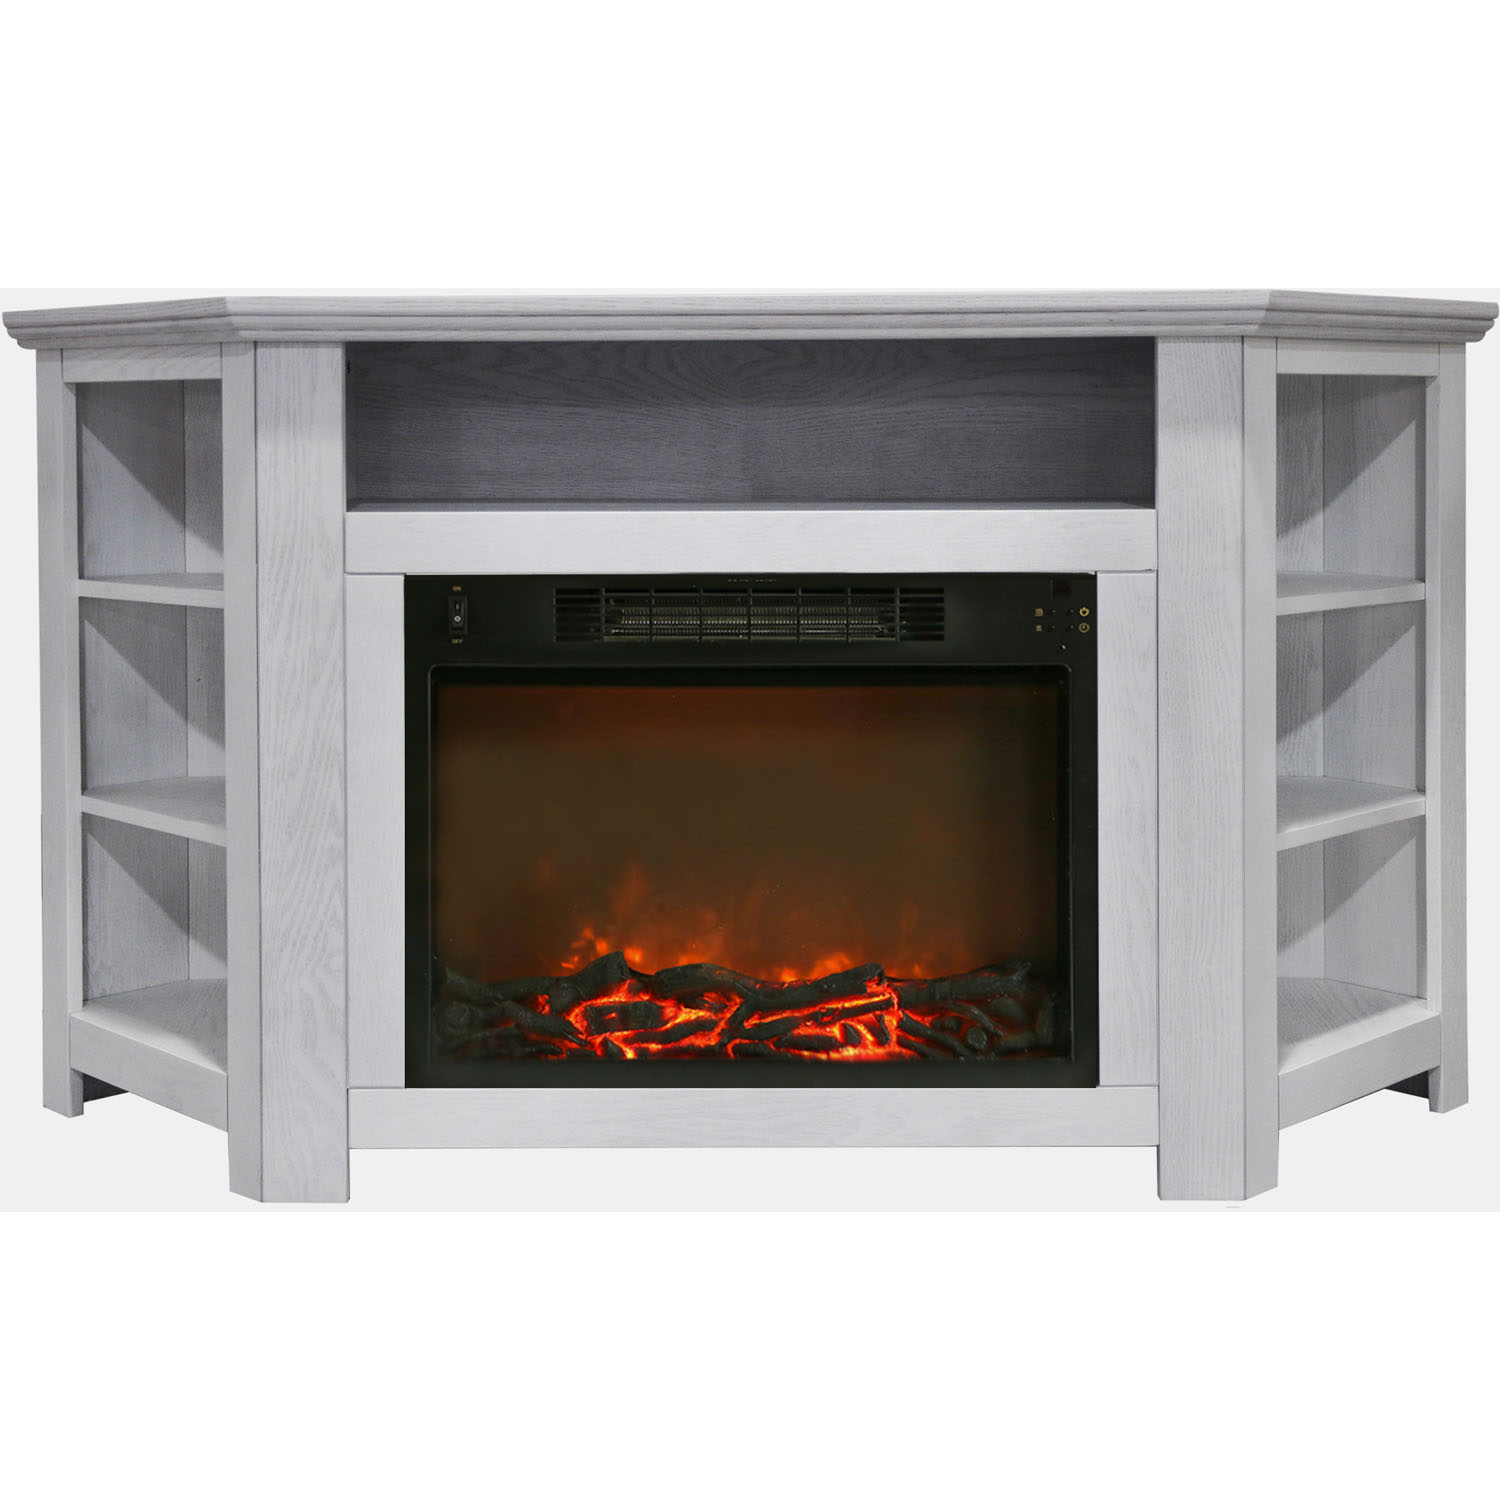 "Cambridge Stratford 56"" Electric Corner Fireplace Heater with Charred Log Display"